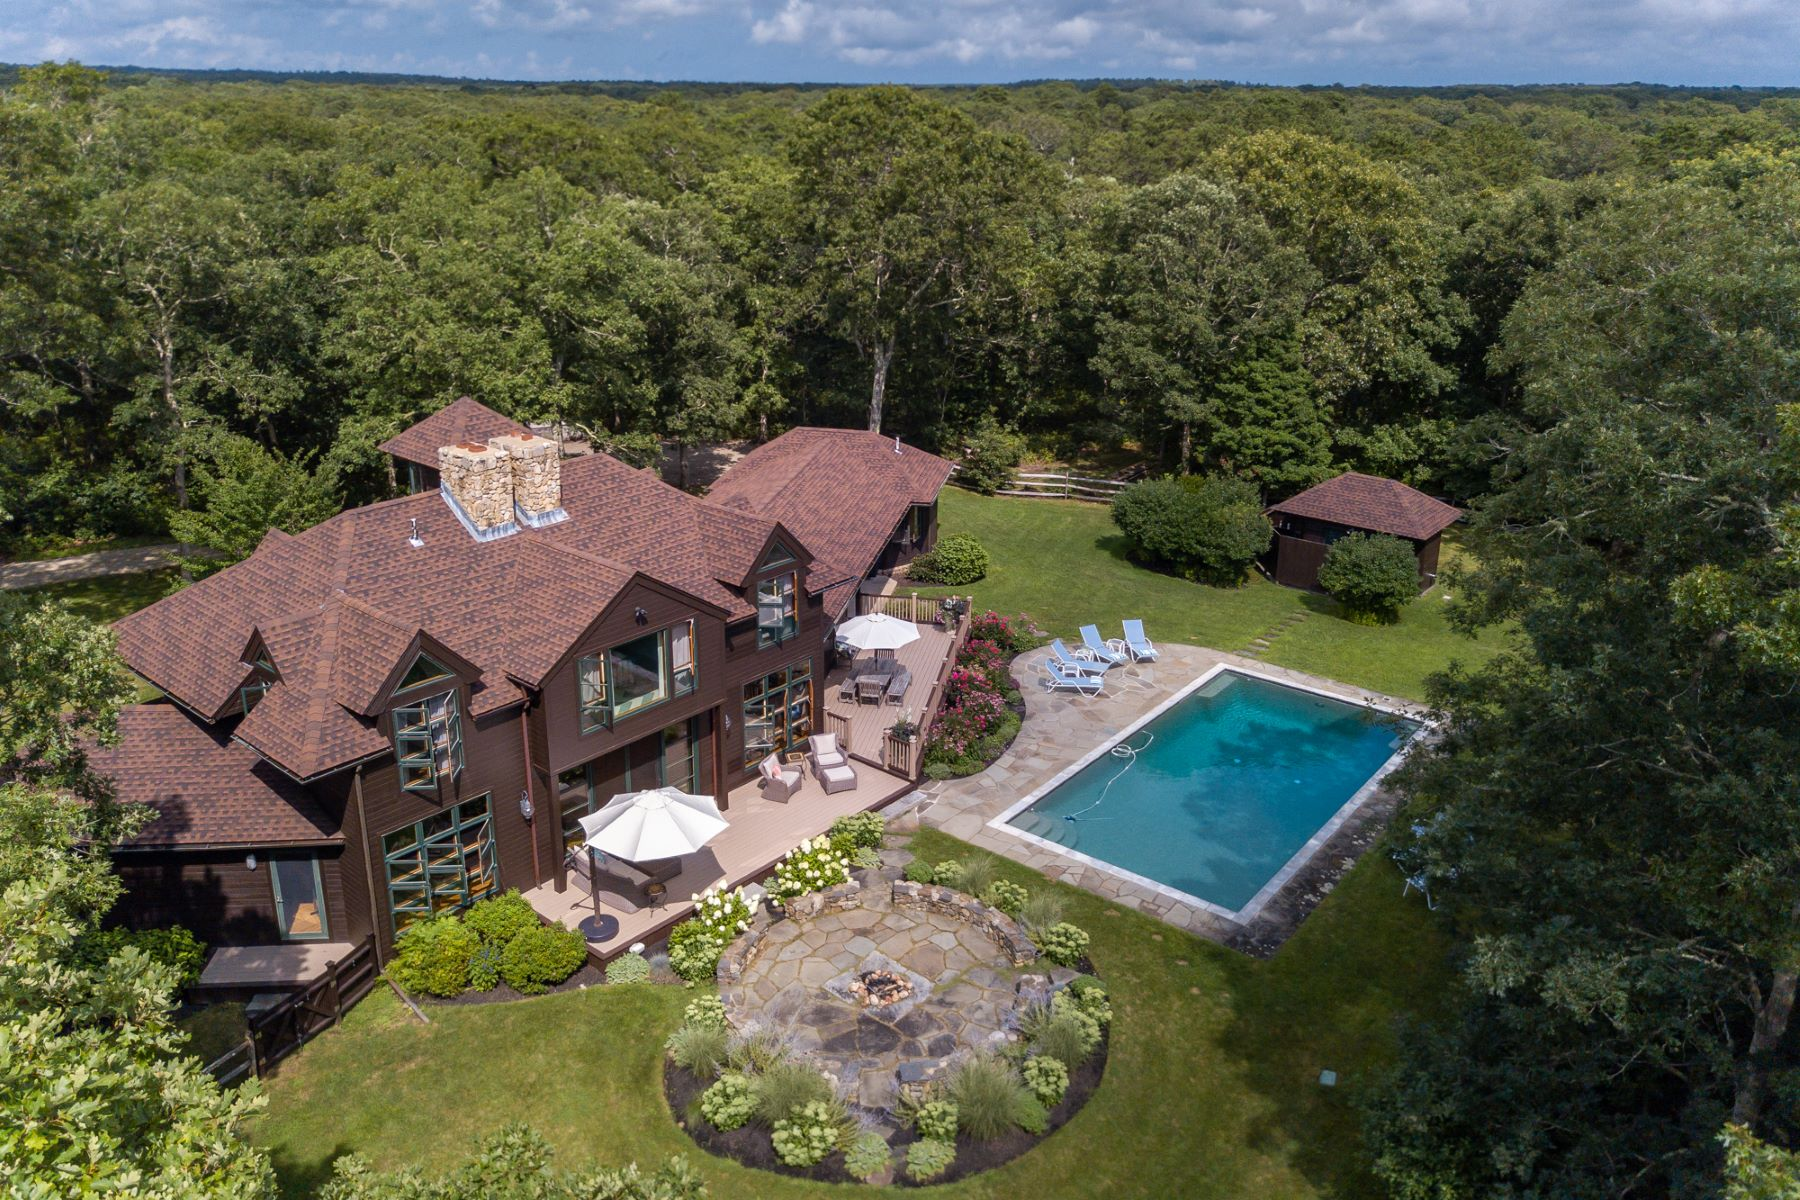 Single Family Homes for Active at Finely crafted West Tisbury Estate on 11.95 acres 25 Flint Hill Road West Tisbury, Massachusetts 02575 United States